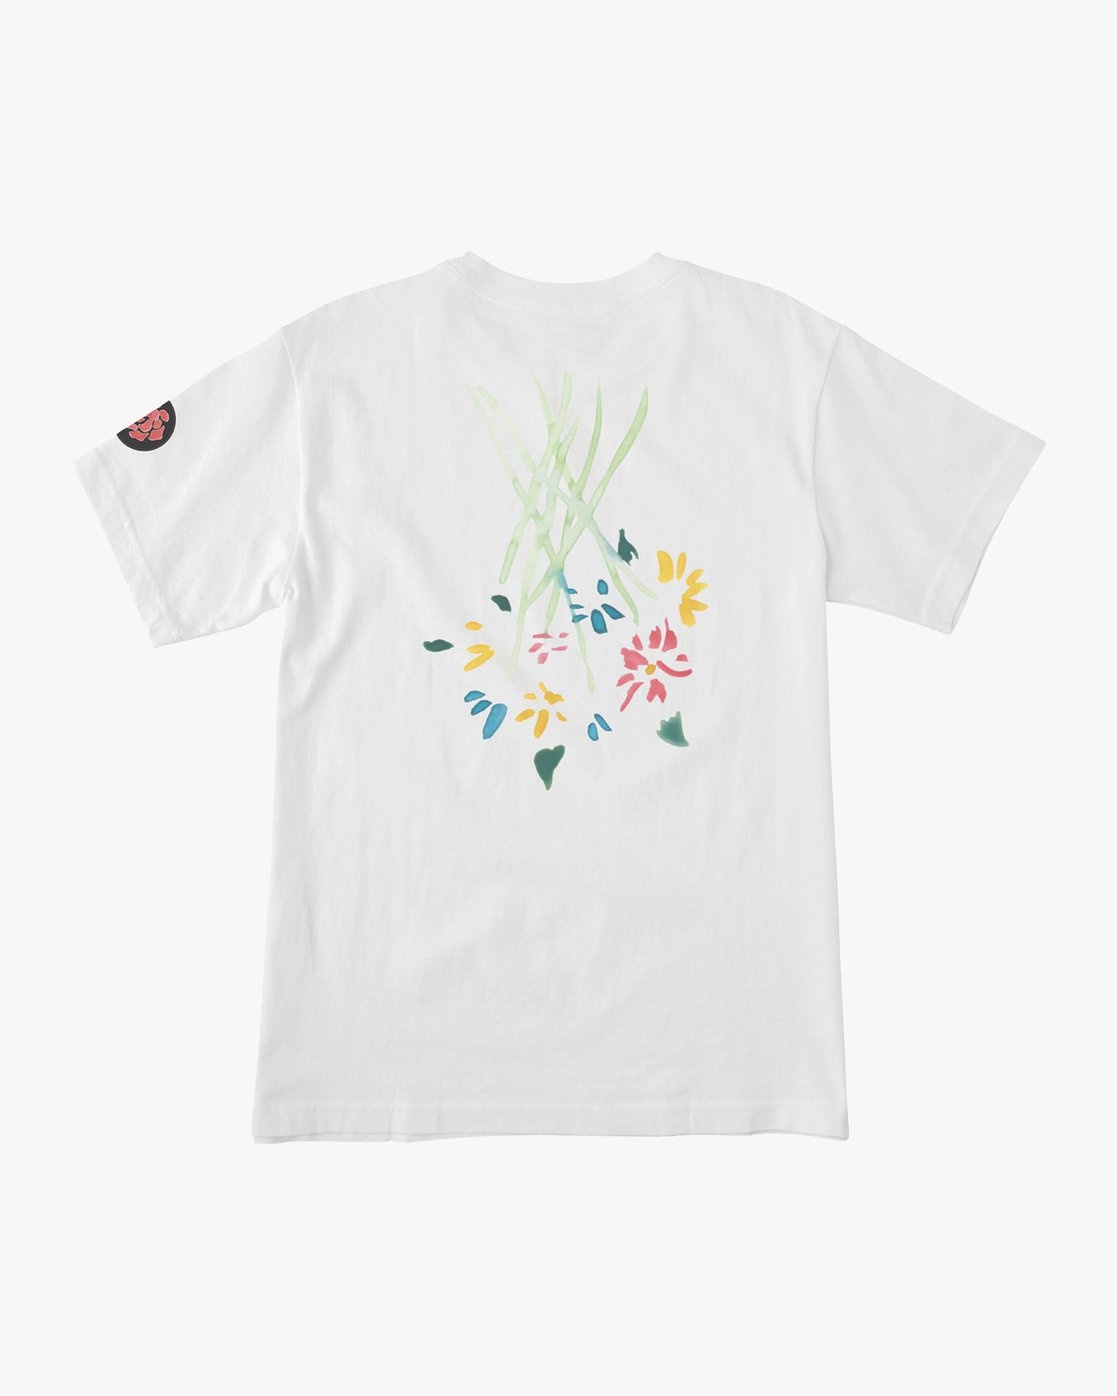 0 AR Lottie Flowers T-Shirt White M414URLF RVCA